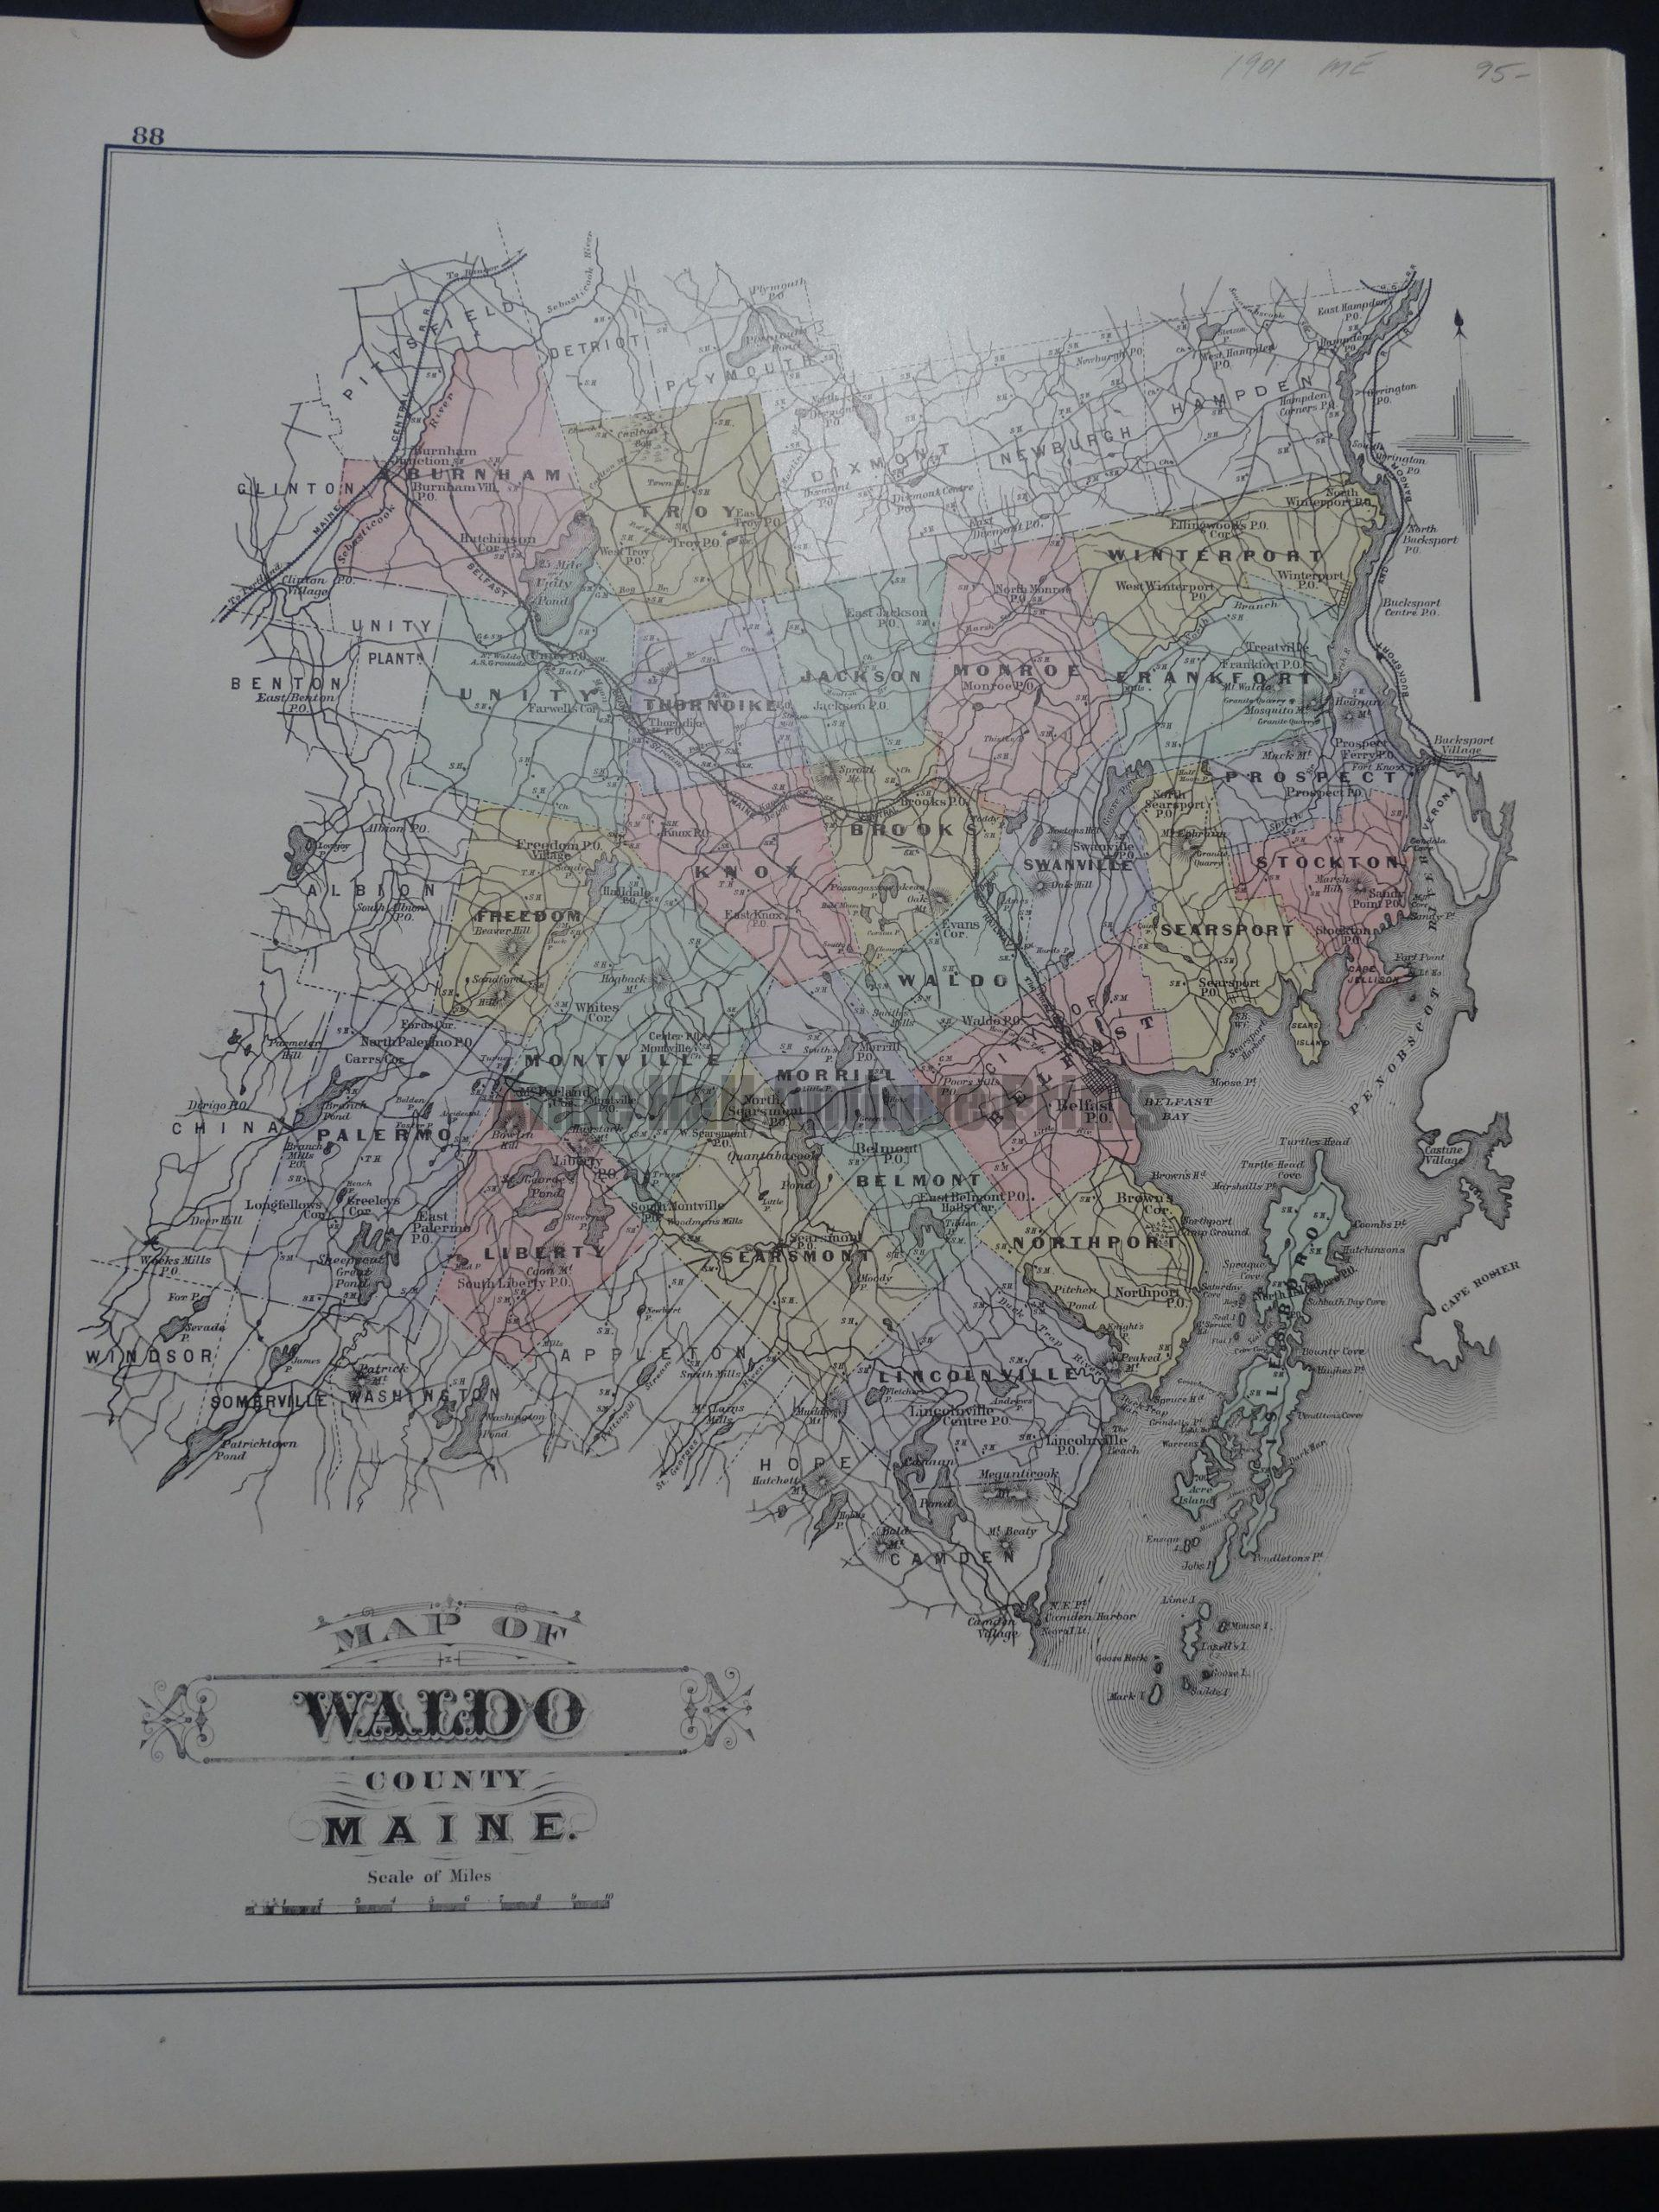 Map of Waldo County Maine, 1901. $95.